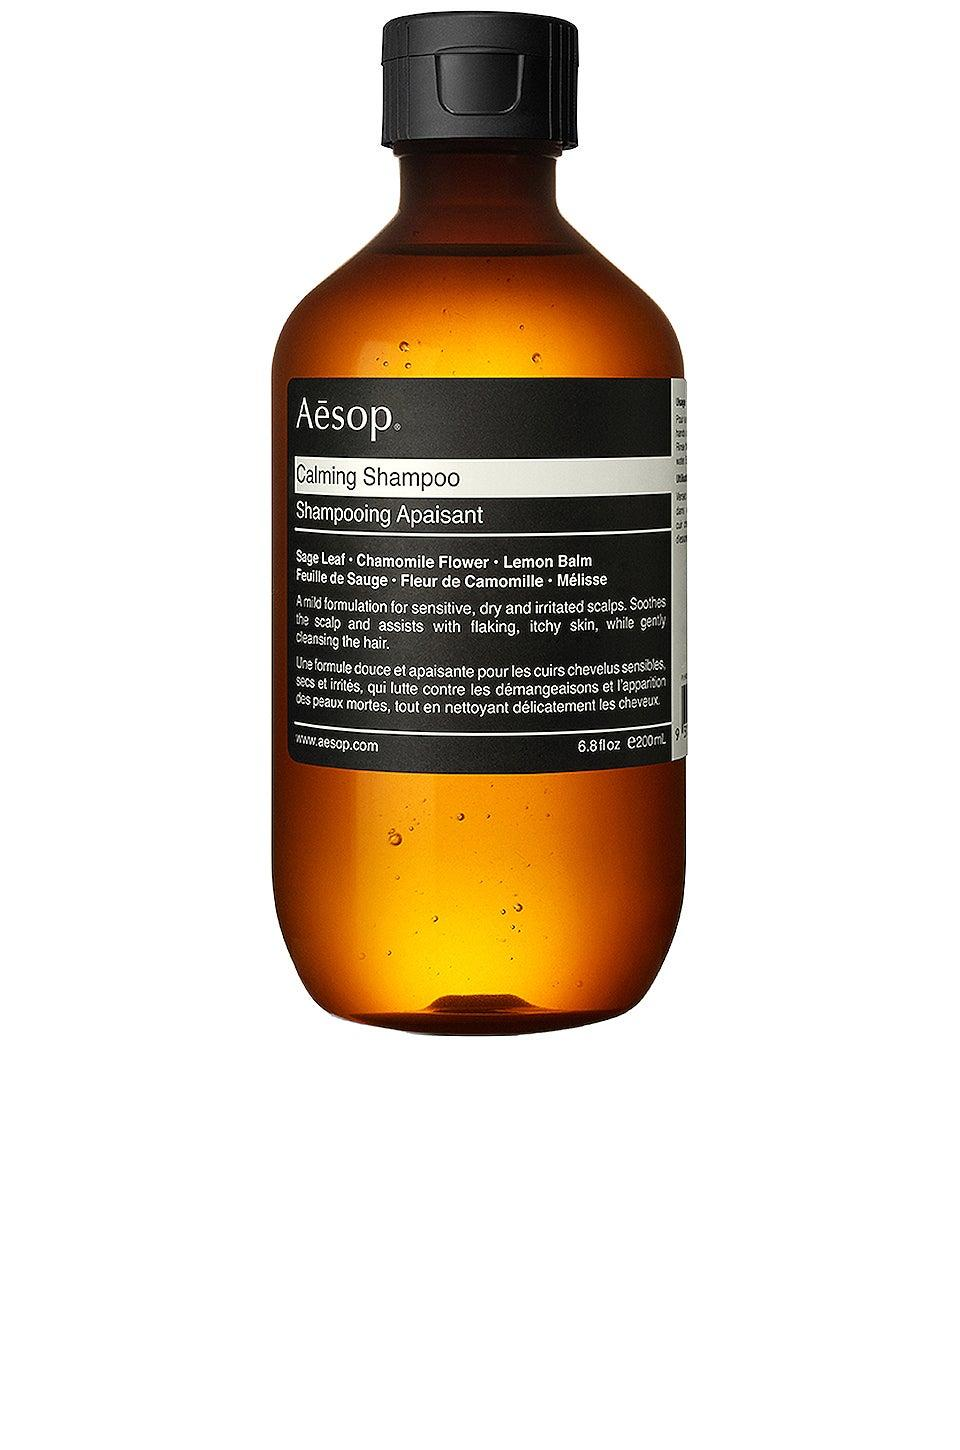 """<h3><a href=""""https://www.skinstore.com/aesop-calming-shampoo-200ml/10619327.html"""" rel=""""nofollow noopener"""" target=""""_blank"""" data-ylk=""""slk:Aesop Calming Shampoo"""" class=""""link rapid-noclick-resp"""">Aesop Calming Shampoo</a></h3><br>Pick up this Aesop option and you'll look forward to shampooing your strands with a sage-, chamomile-, and tea tree-infused formula that smells like a spa day.<br><br><strong>Aesop</strong> Calming Shampoo, $, available at <a href=""""https://www.skinstore.com/aesop-calming-shampoo-200ml/10619327.html"""" rel=""""nofollow noopener"""" target=""""_blank"""" data-ylk=""""slk:SkinStore"""" class=""""link rapid-noclick-resp"""">SkinStore</a>"""